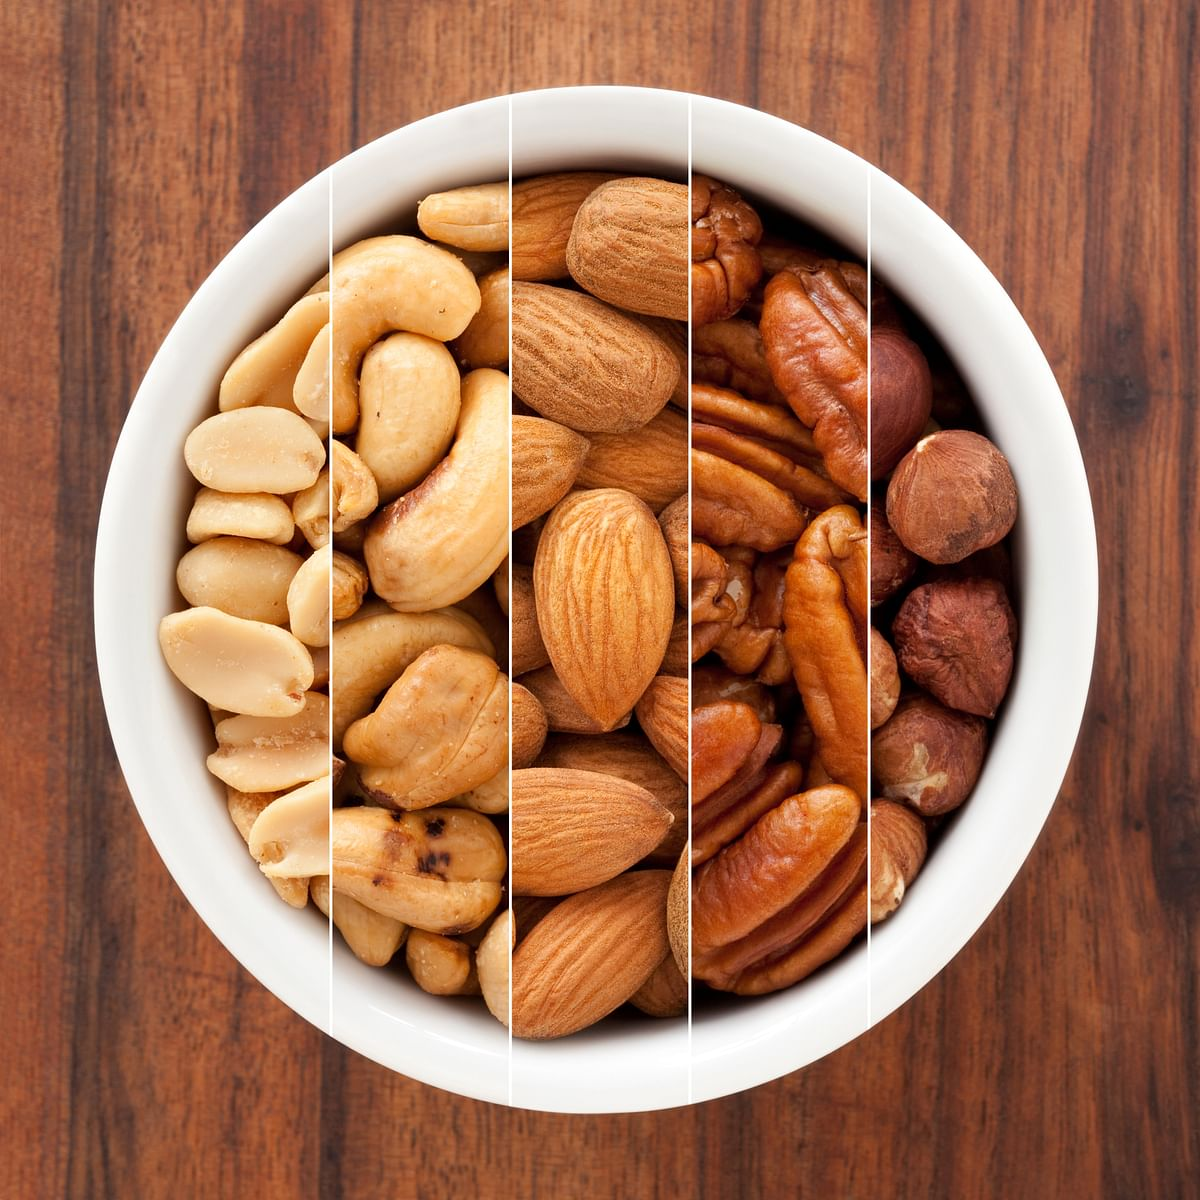 Cashews and almonds are full of zinc.